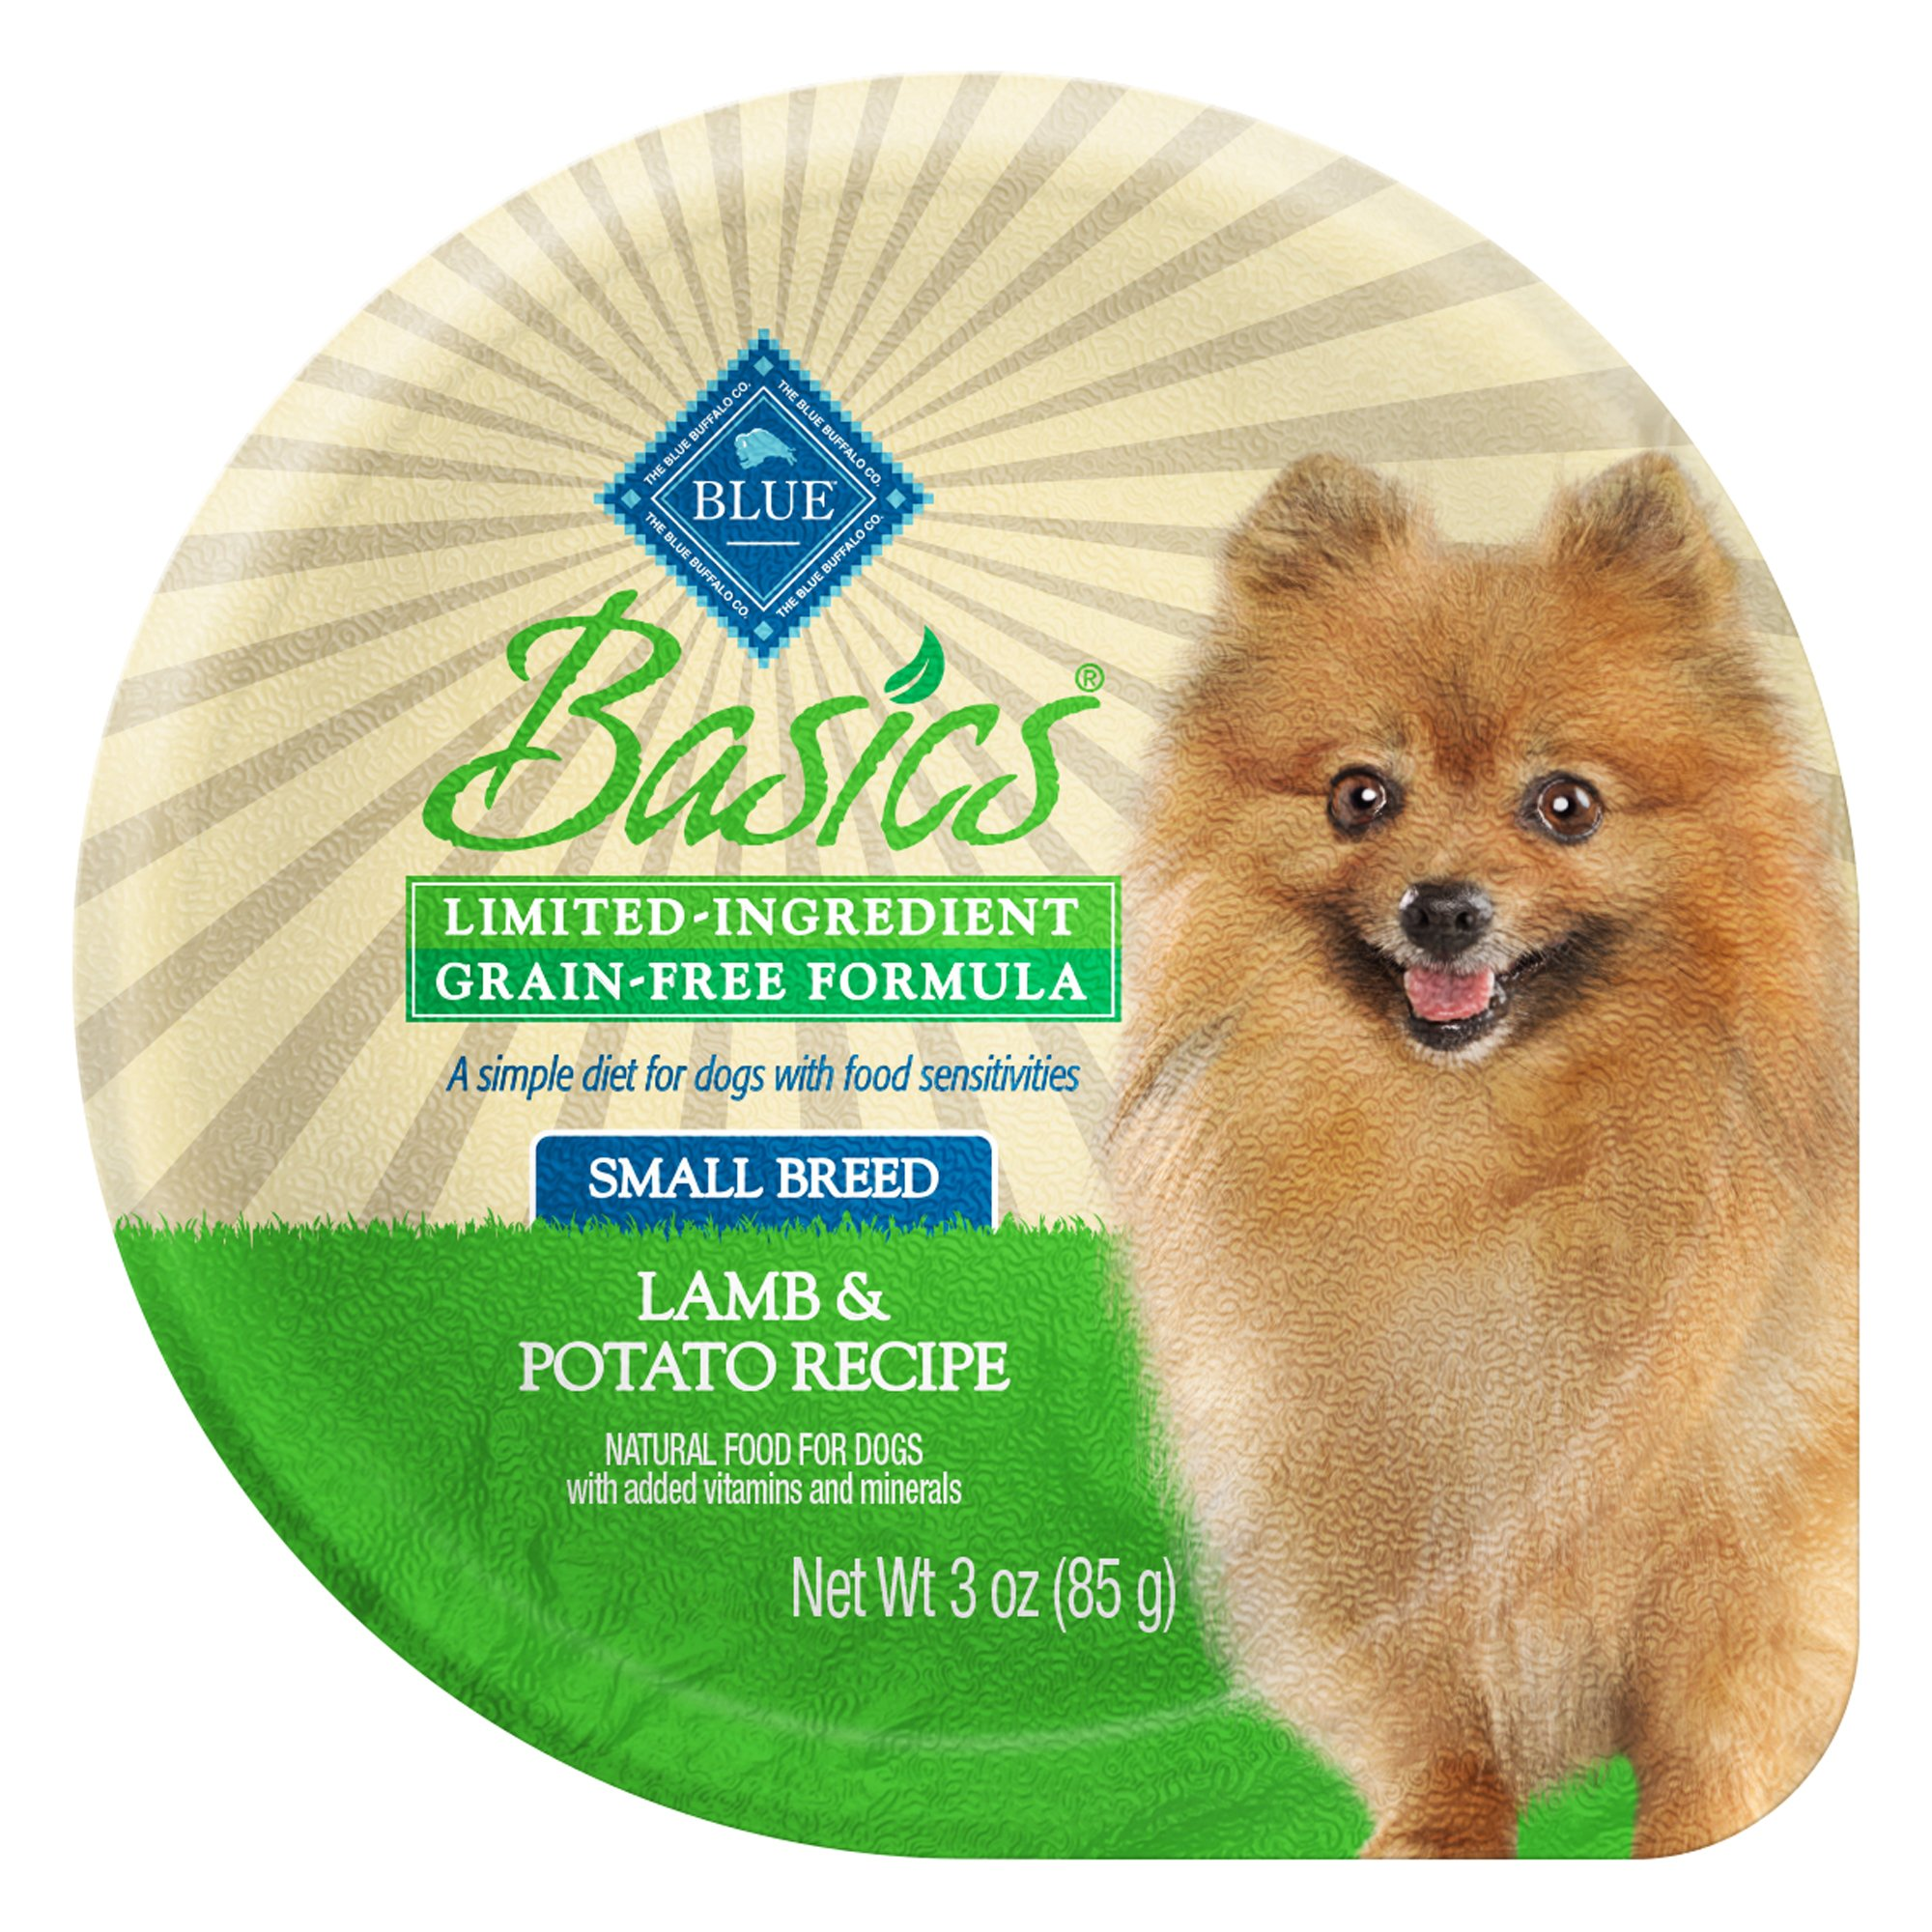 Blue Buffalo Basics Limited Ingredient Grain Free Small Breed Adult Lamb Dog Food Tray